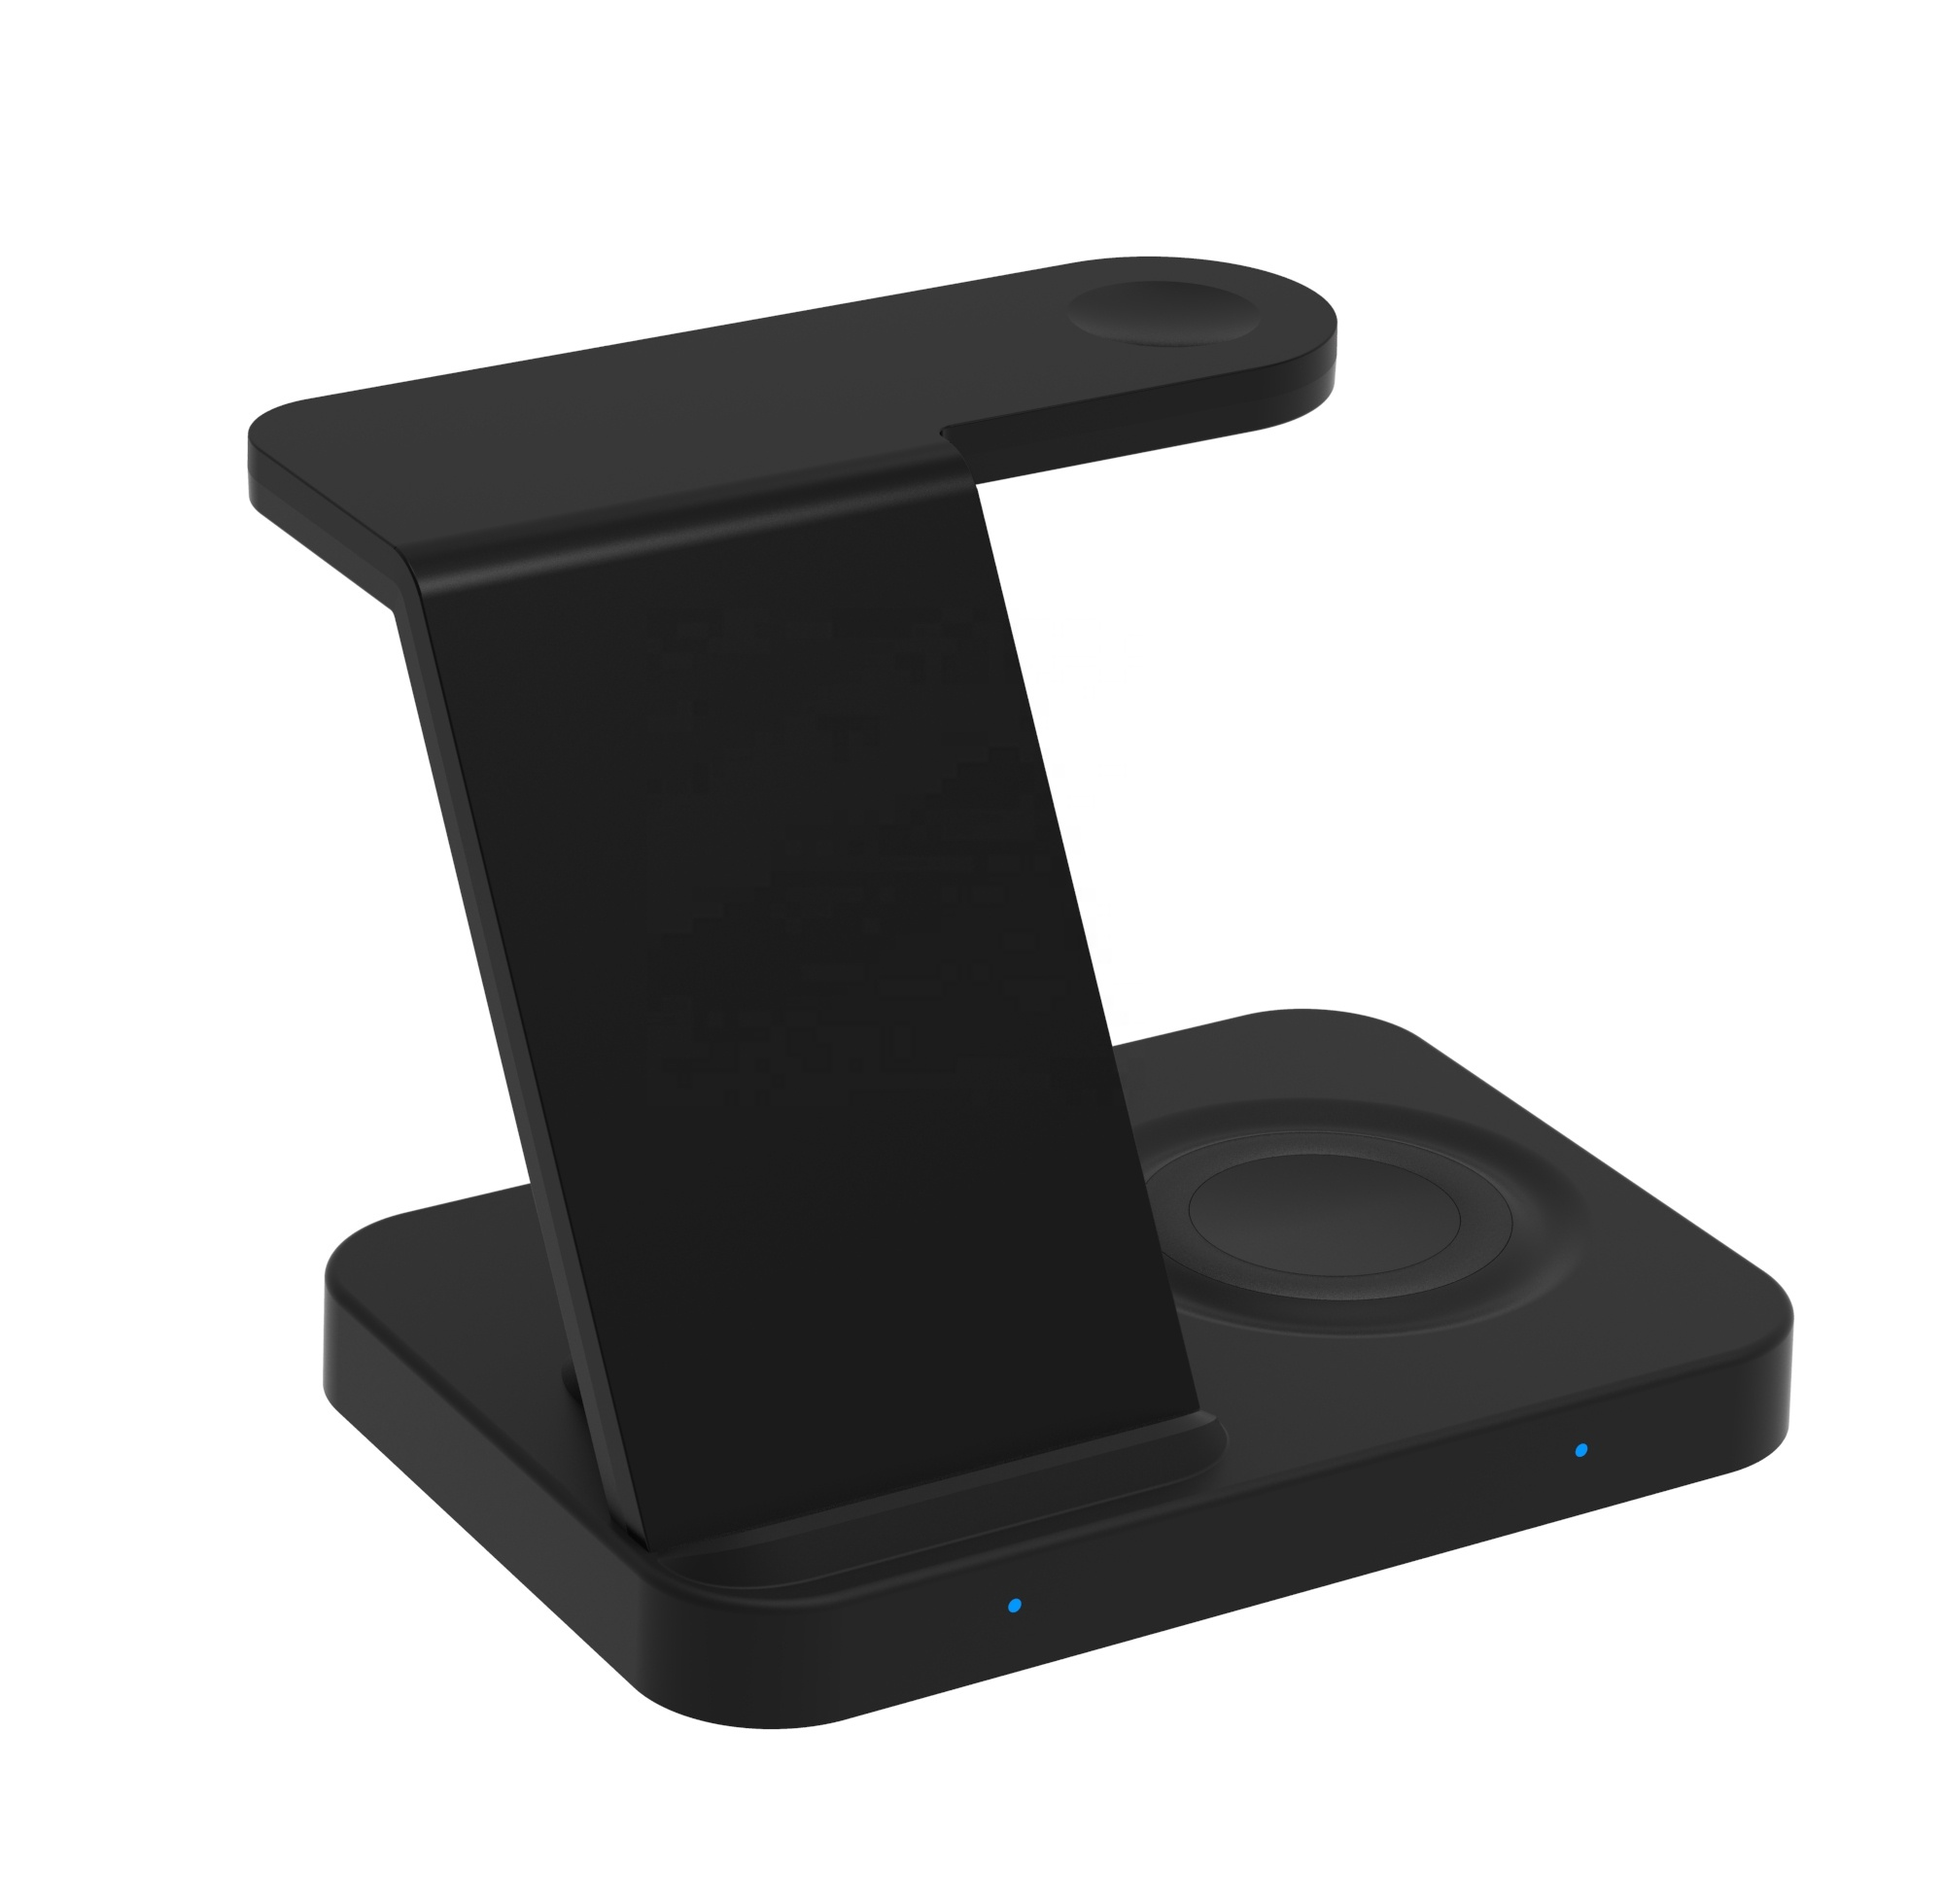 3 in 1 Fast Wireless Charger Station for Galaxy Phone and Galaxy Watch and Galaxy Buds and Airpods with Extra USB Charging Port